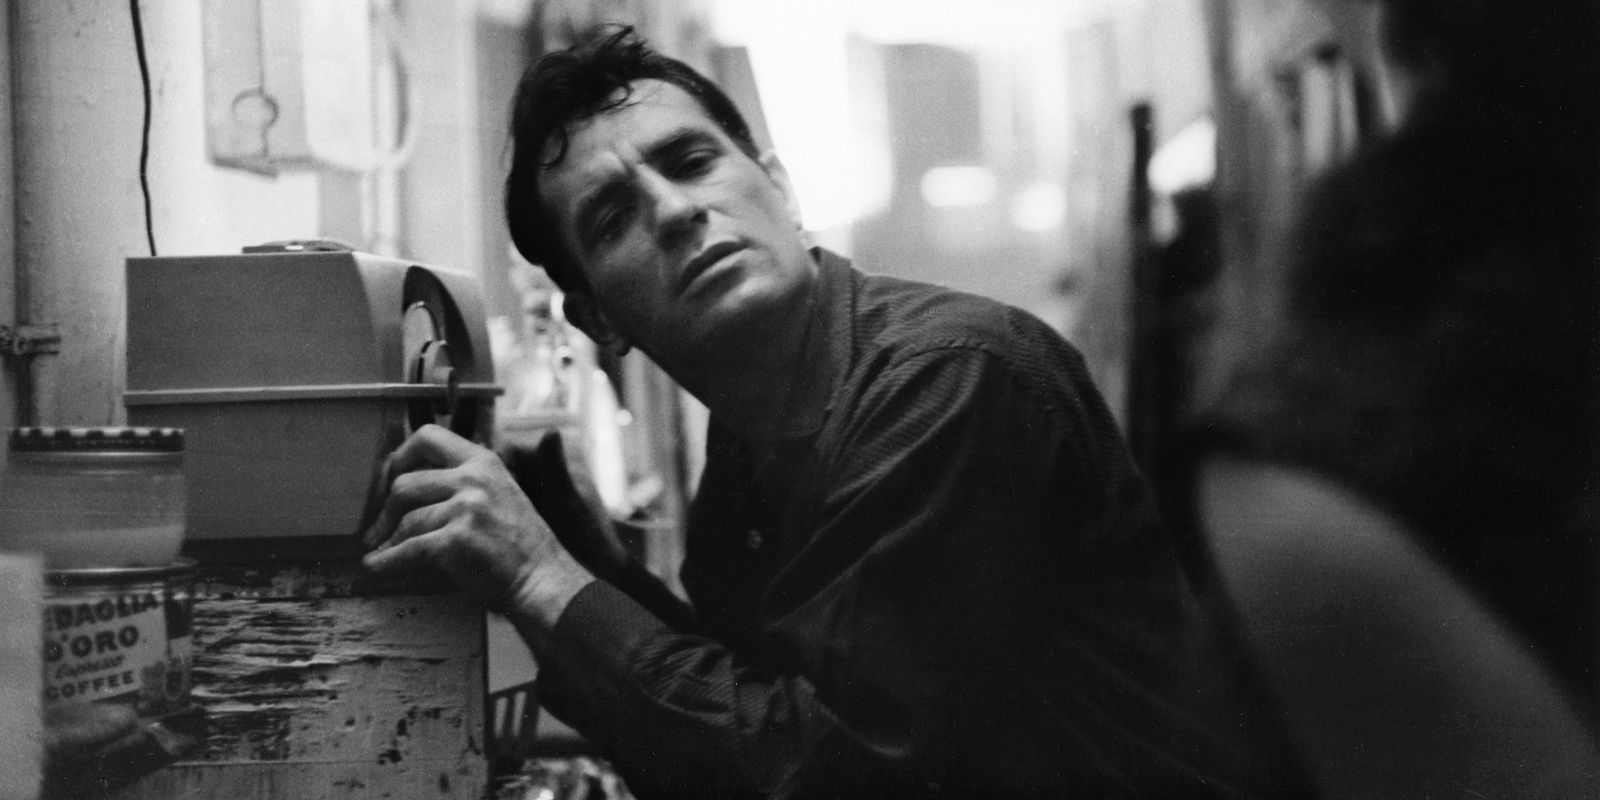 Jack Kerouac's Essay About American Life - The Unknown Kerouac Excerpt